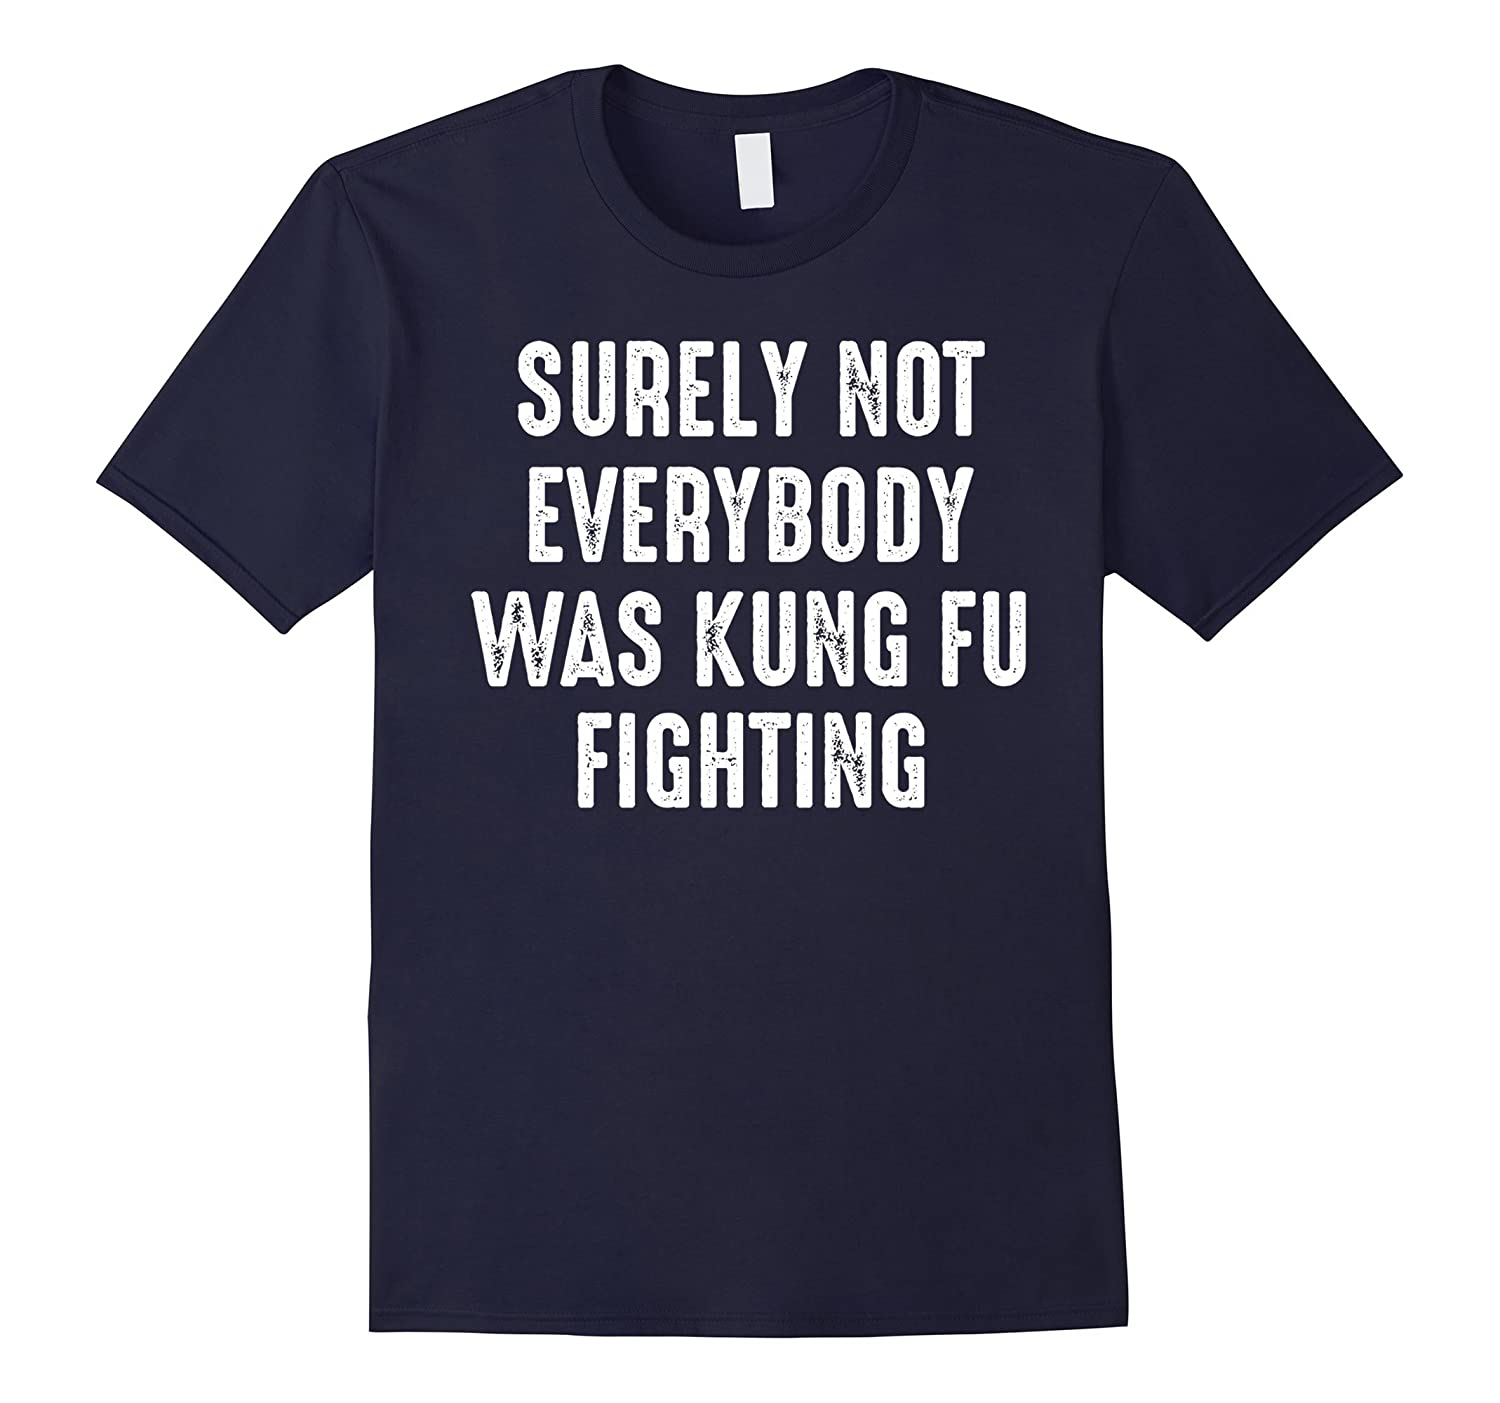 Surely not everybody was kung fu fighting tshirt-FL